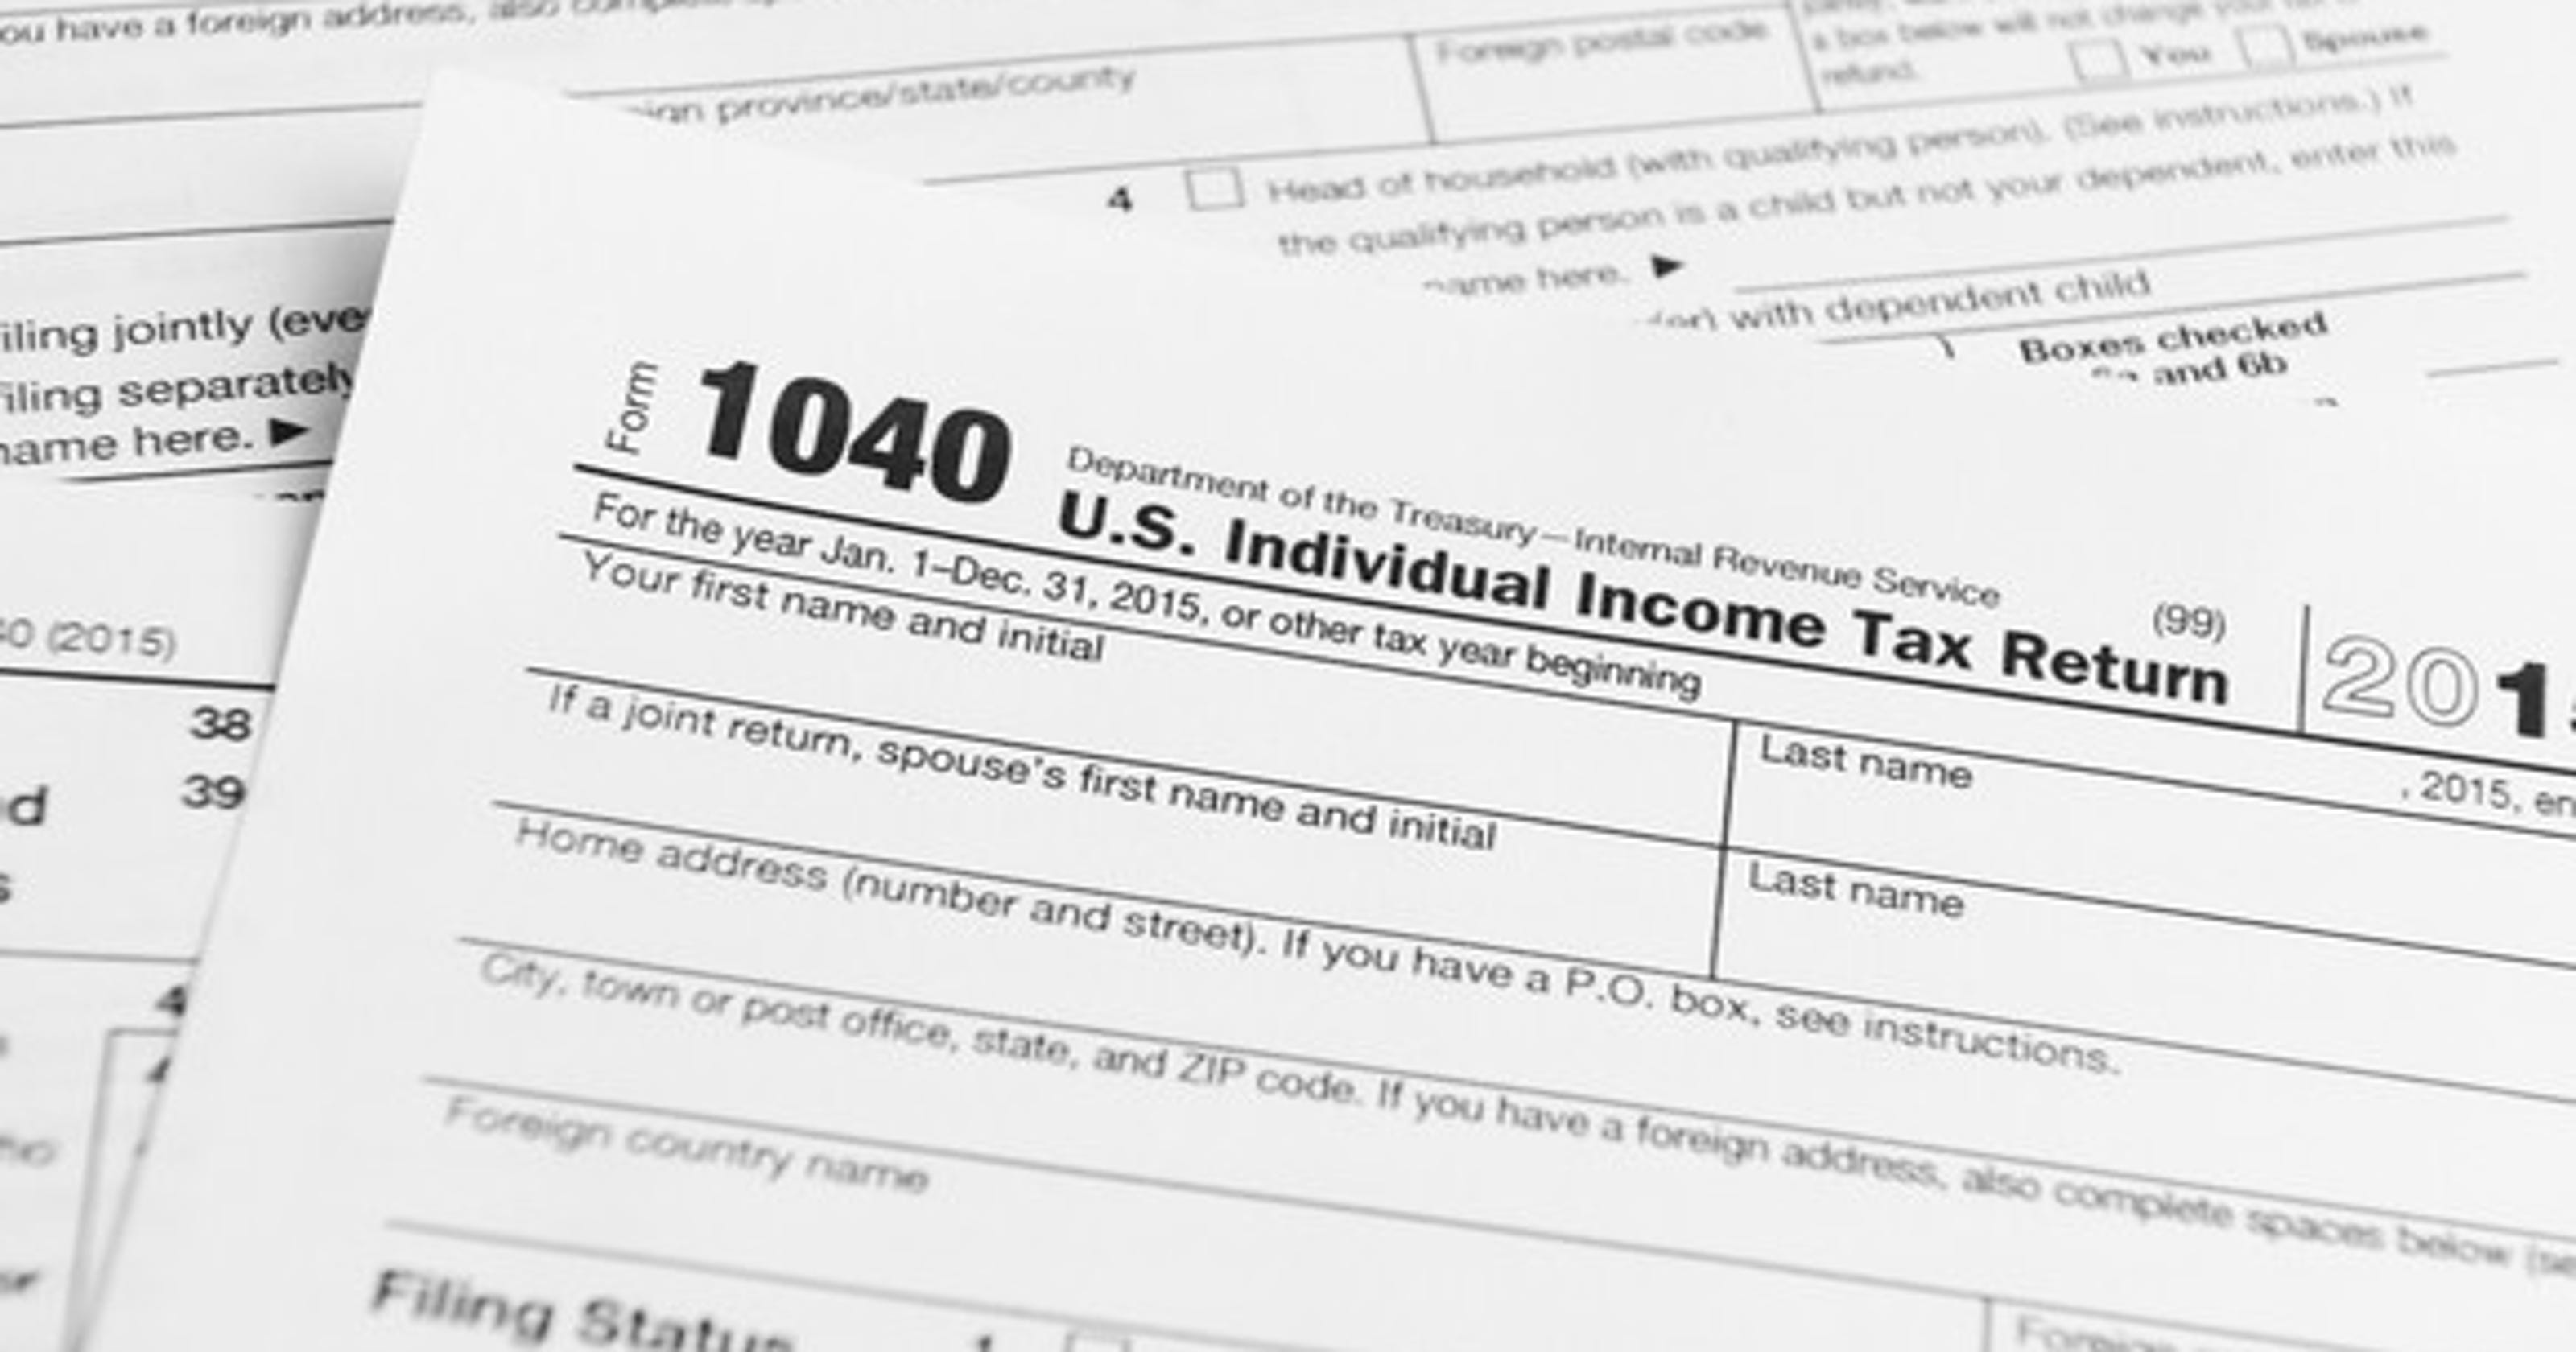 Taxes You Have 2 Weeks Left To File Your Tax Return To The Irs To